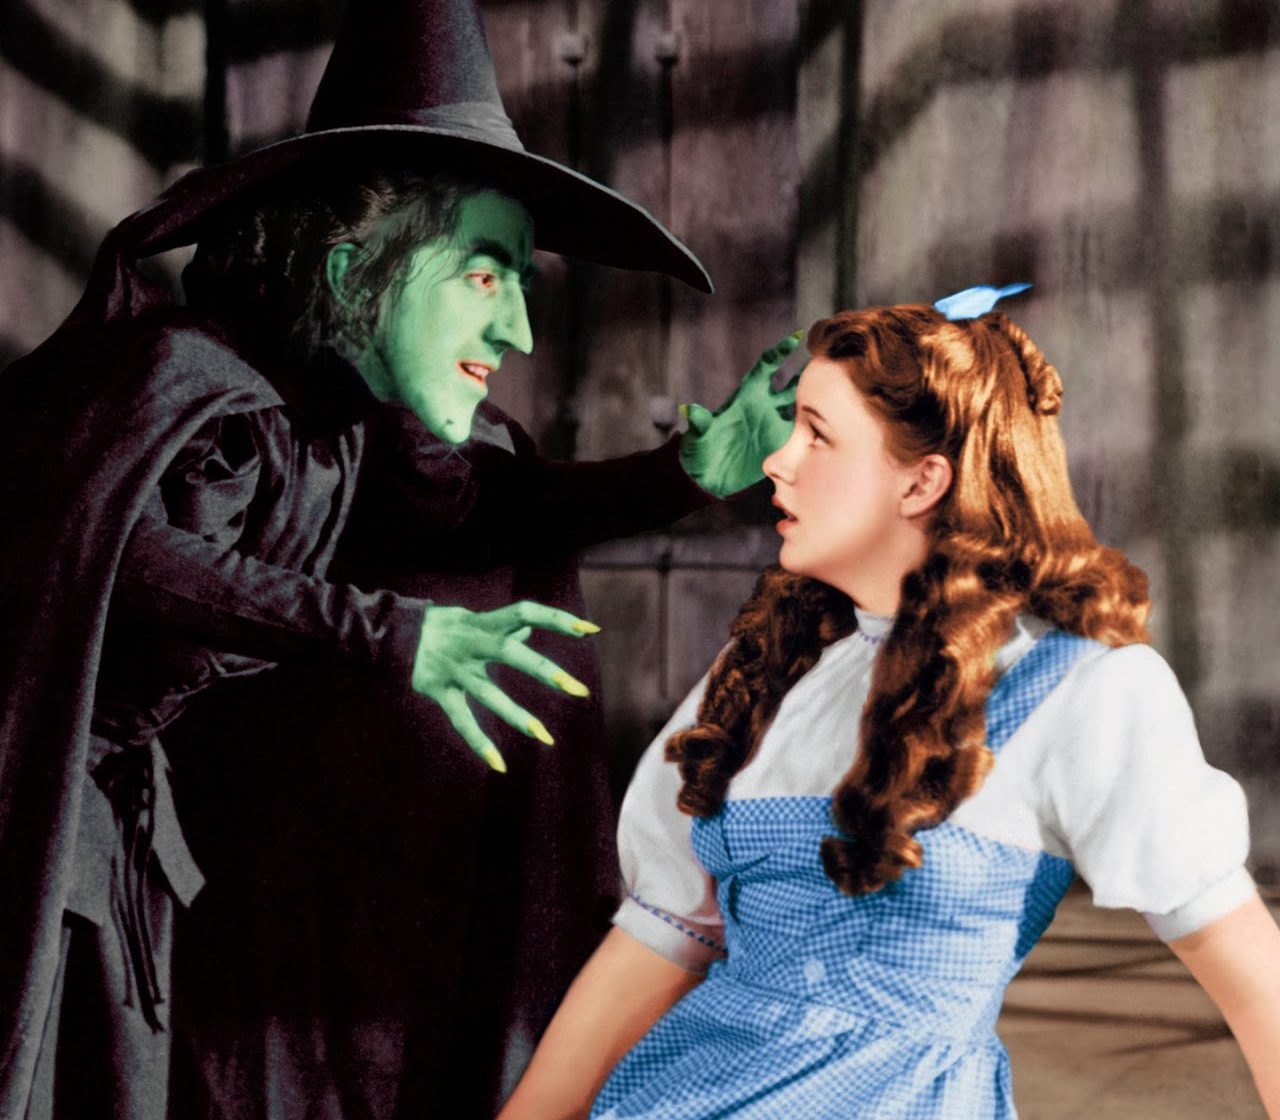 Annex Hamilton Margaret Wizard of Oz The 06 e1605614577363 20 Characters That Scared The Life Out Of Us As Children